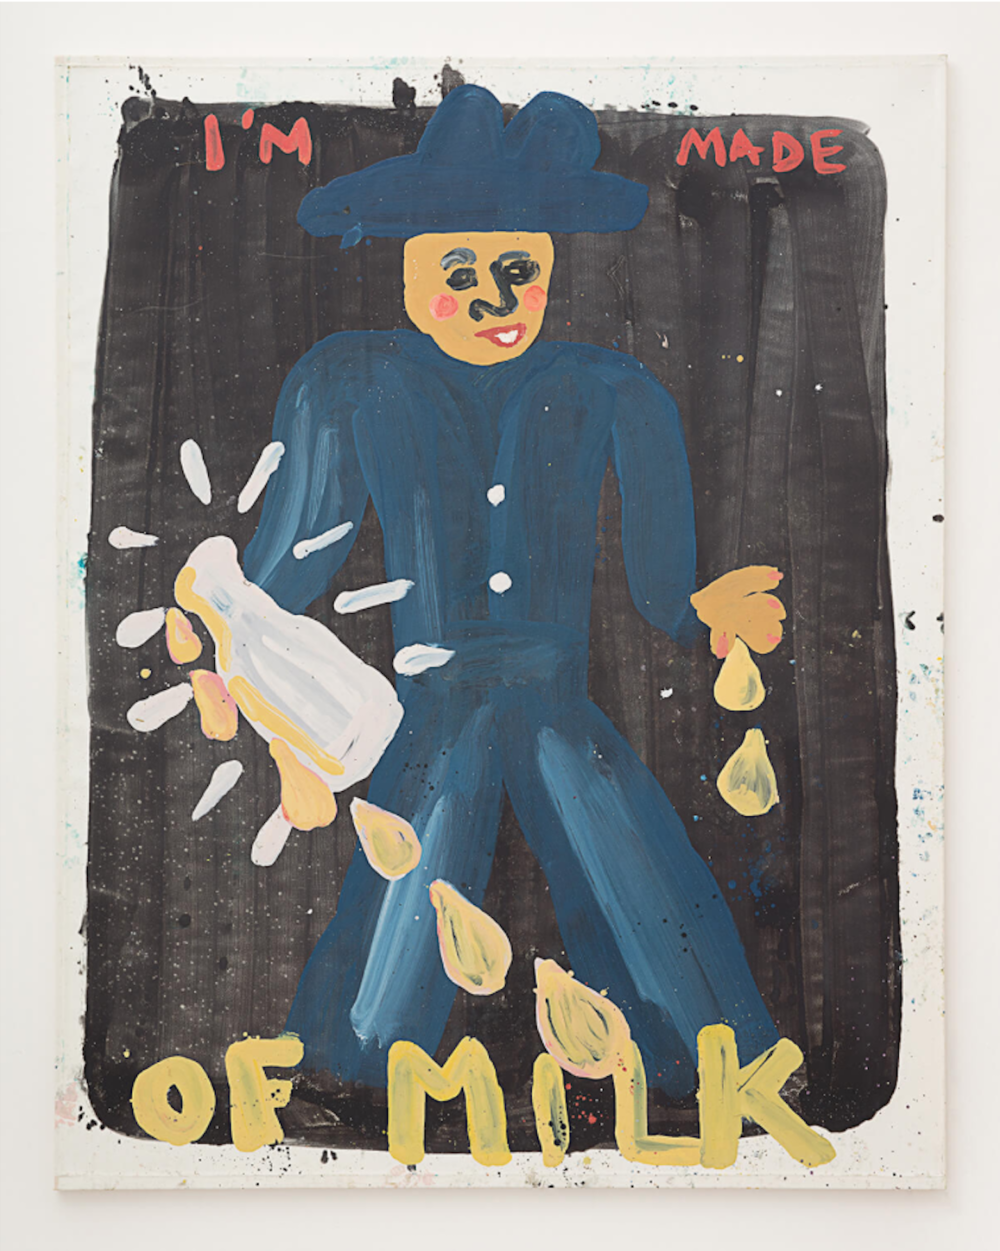 Kate Groobey, I'm Made Of Milk, 2017. Oil on canvas. 73 x 59 inches. ©Kate Groobey; Courtesy of Horton Gallery.